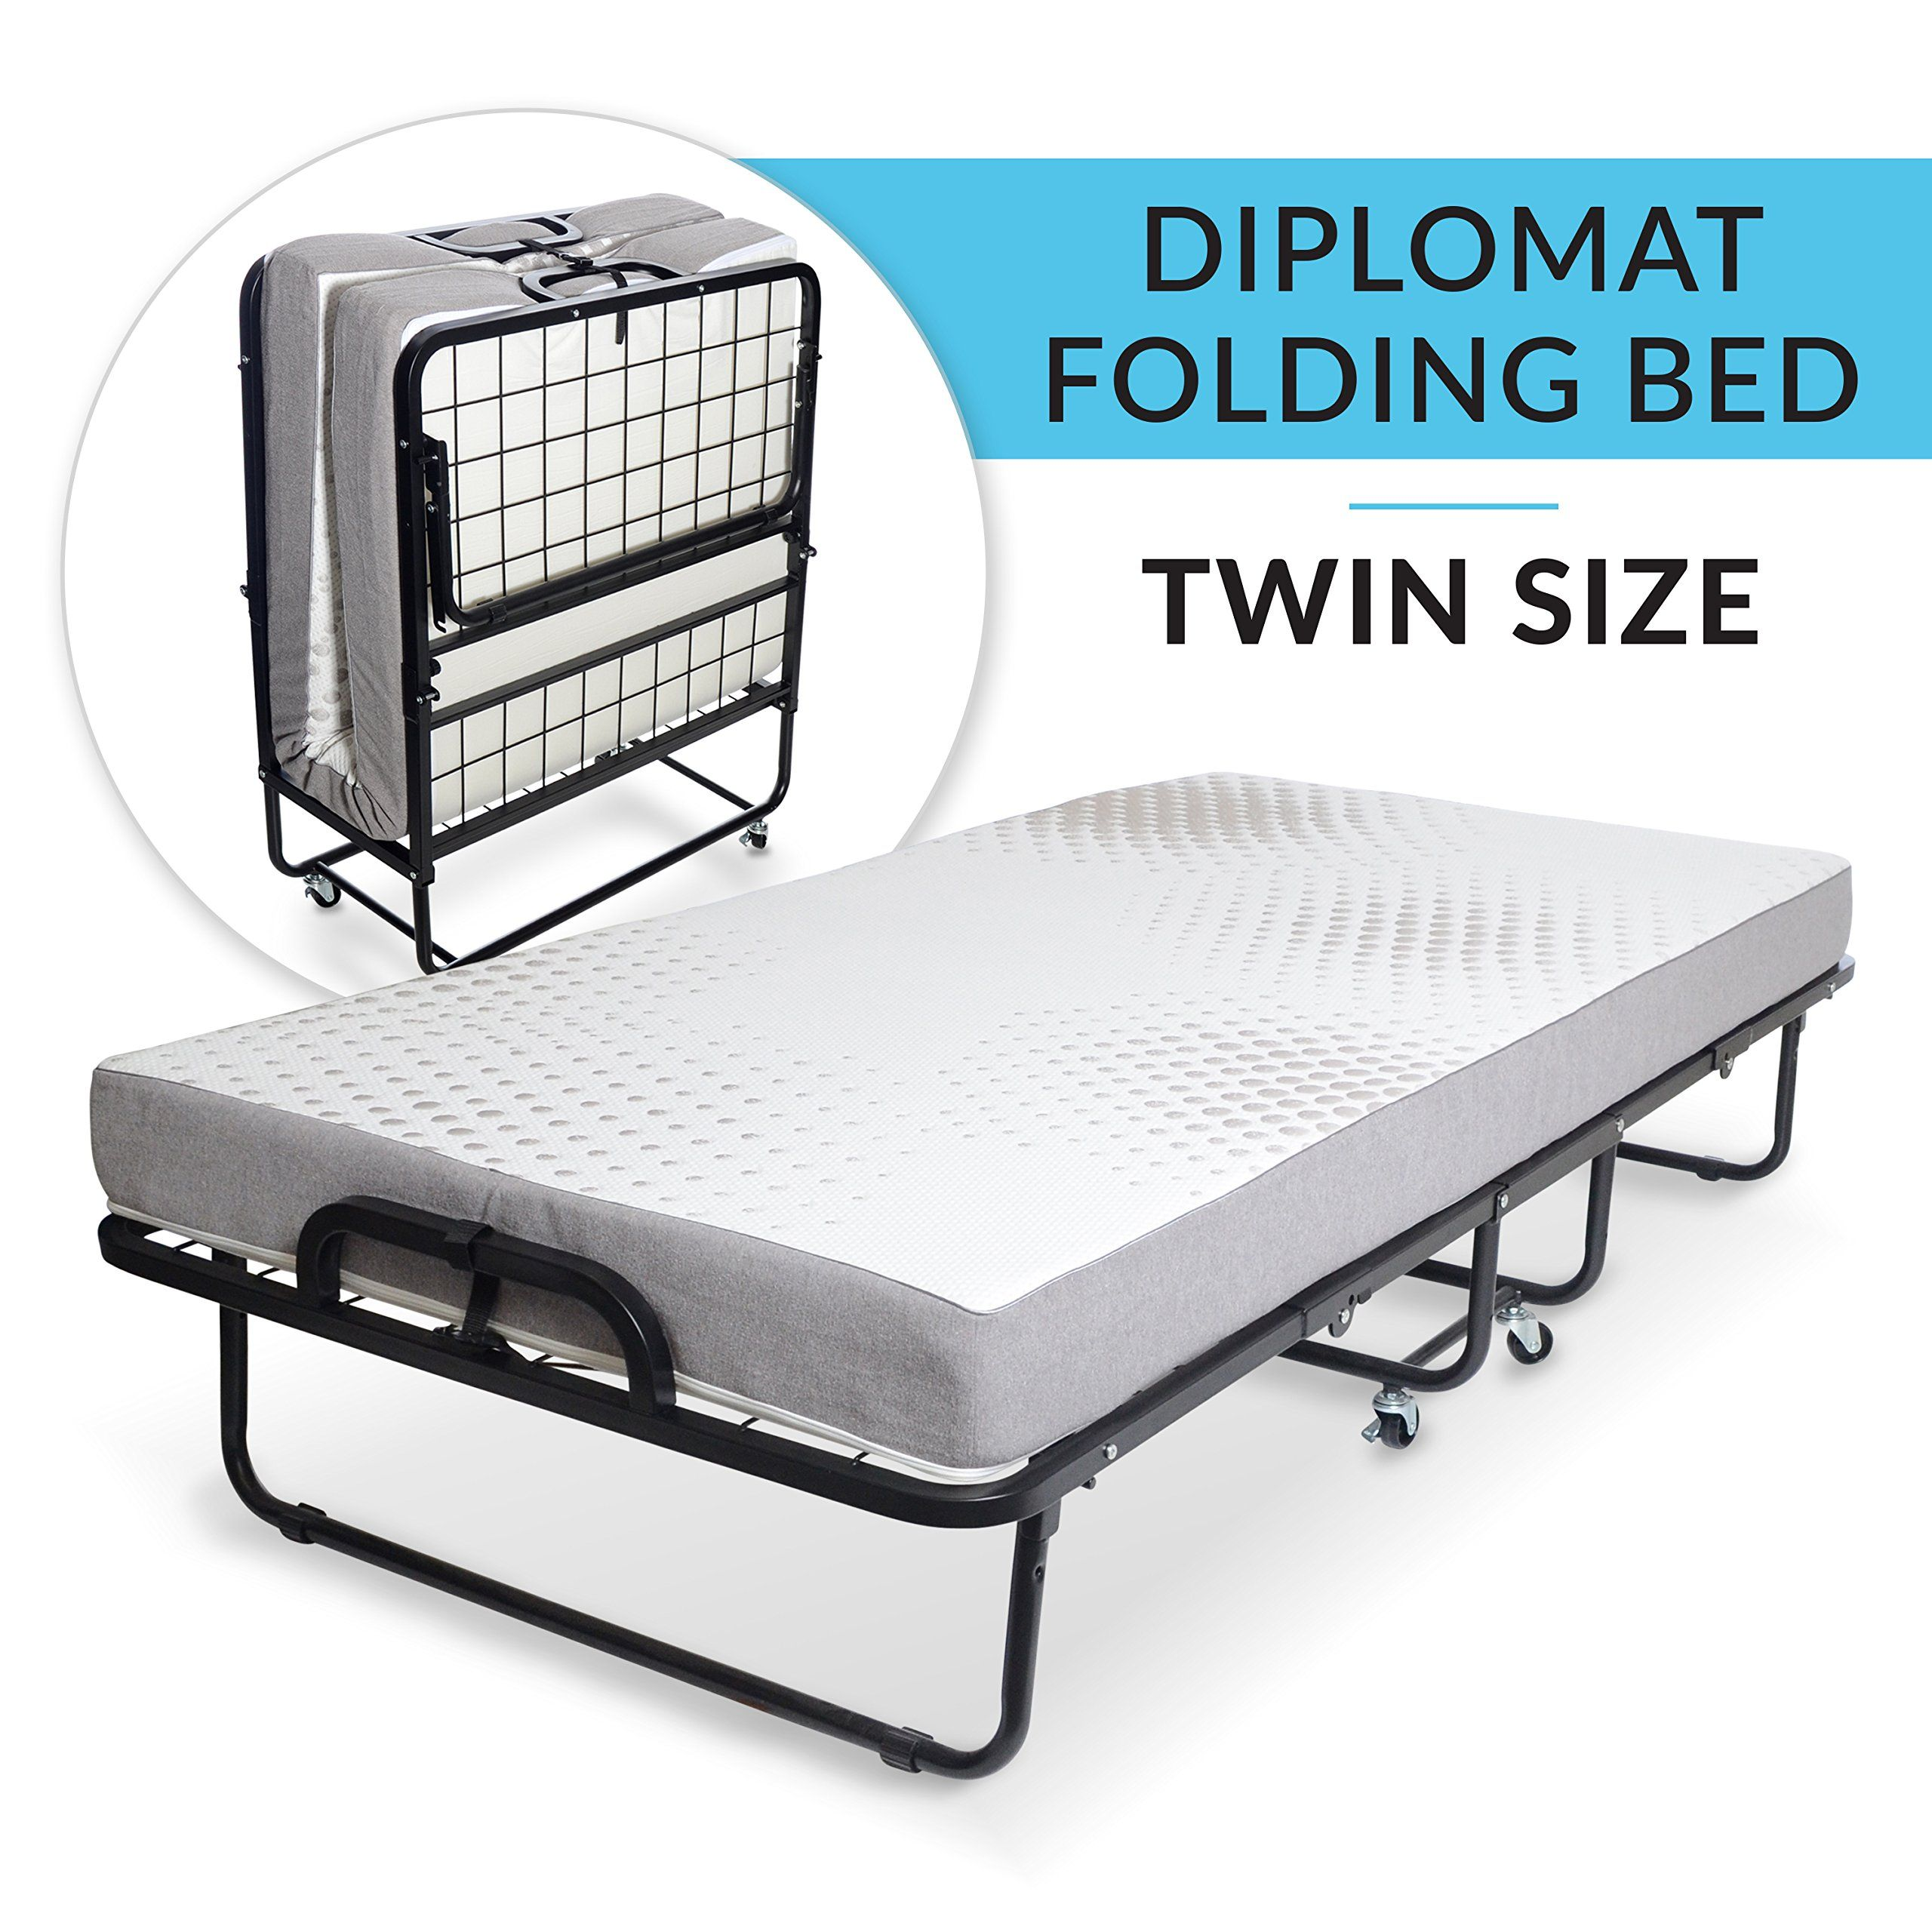 - Milliard Diplomat Folding Bed – Twin Size With Luxurious Memory